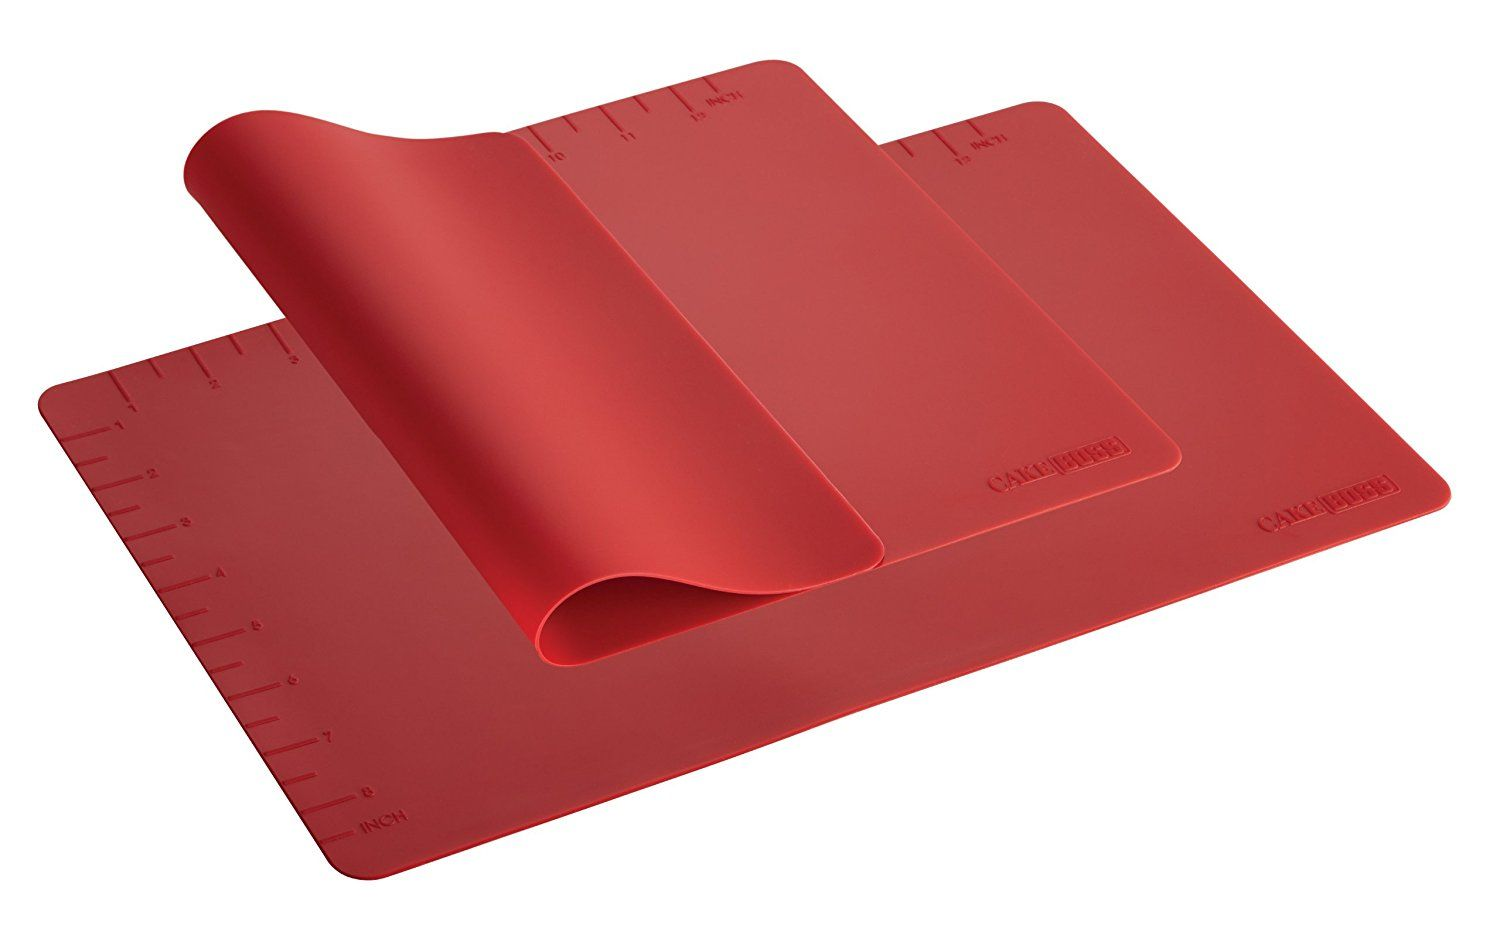 Cake Boss Countertop Accessories 2 Piece Silicone Baking Mat Set